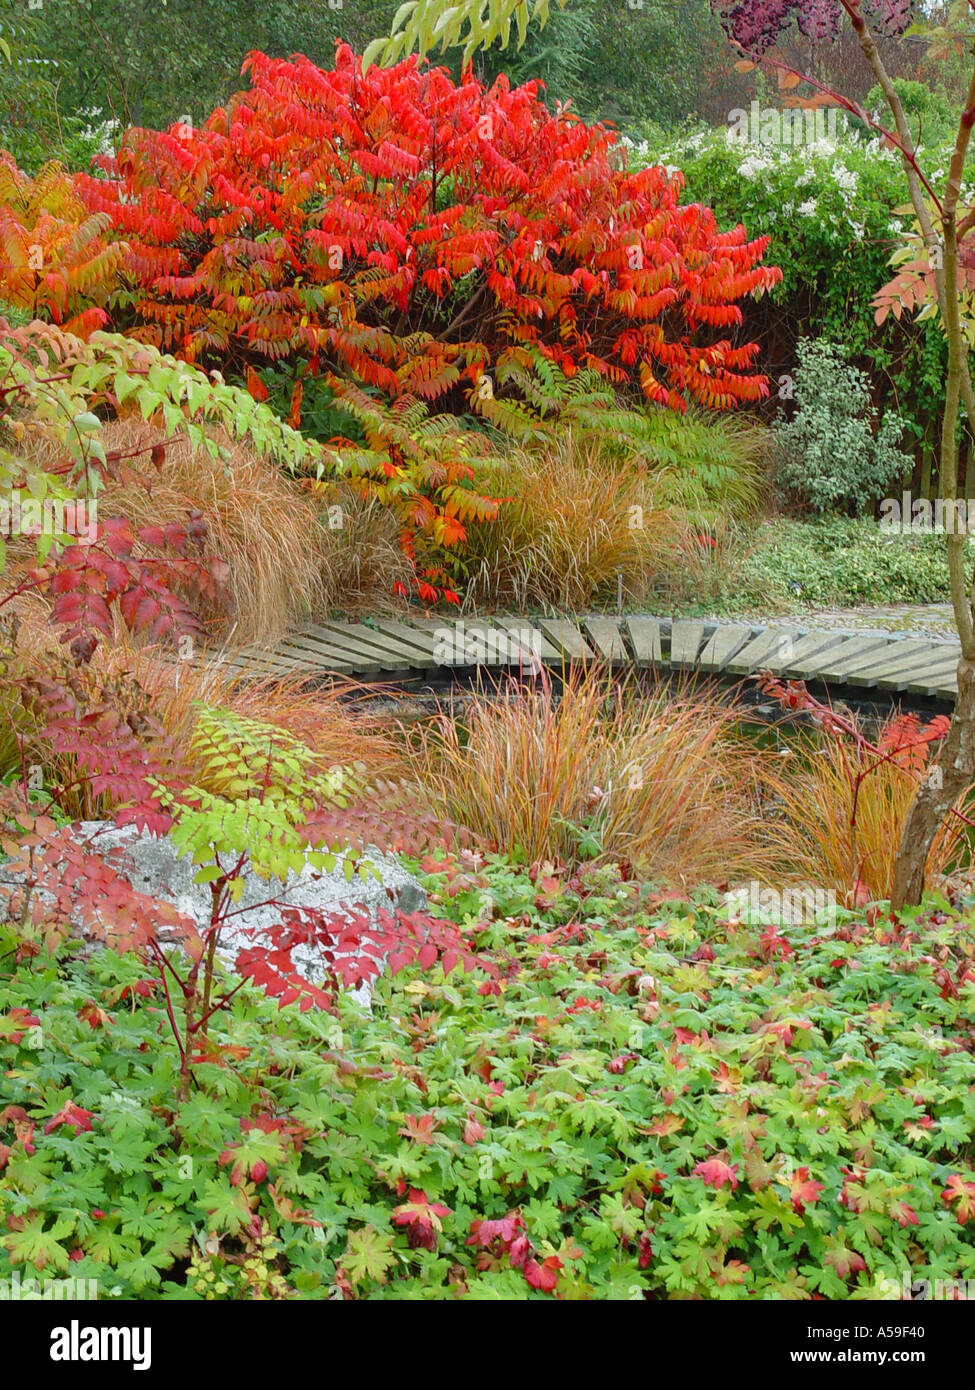 Superior Autumn Garden View Broadview Gardens